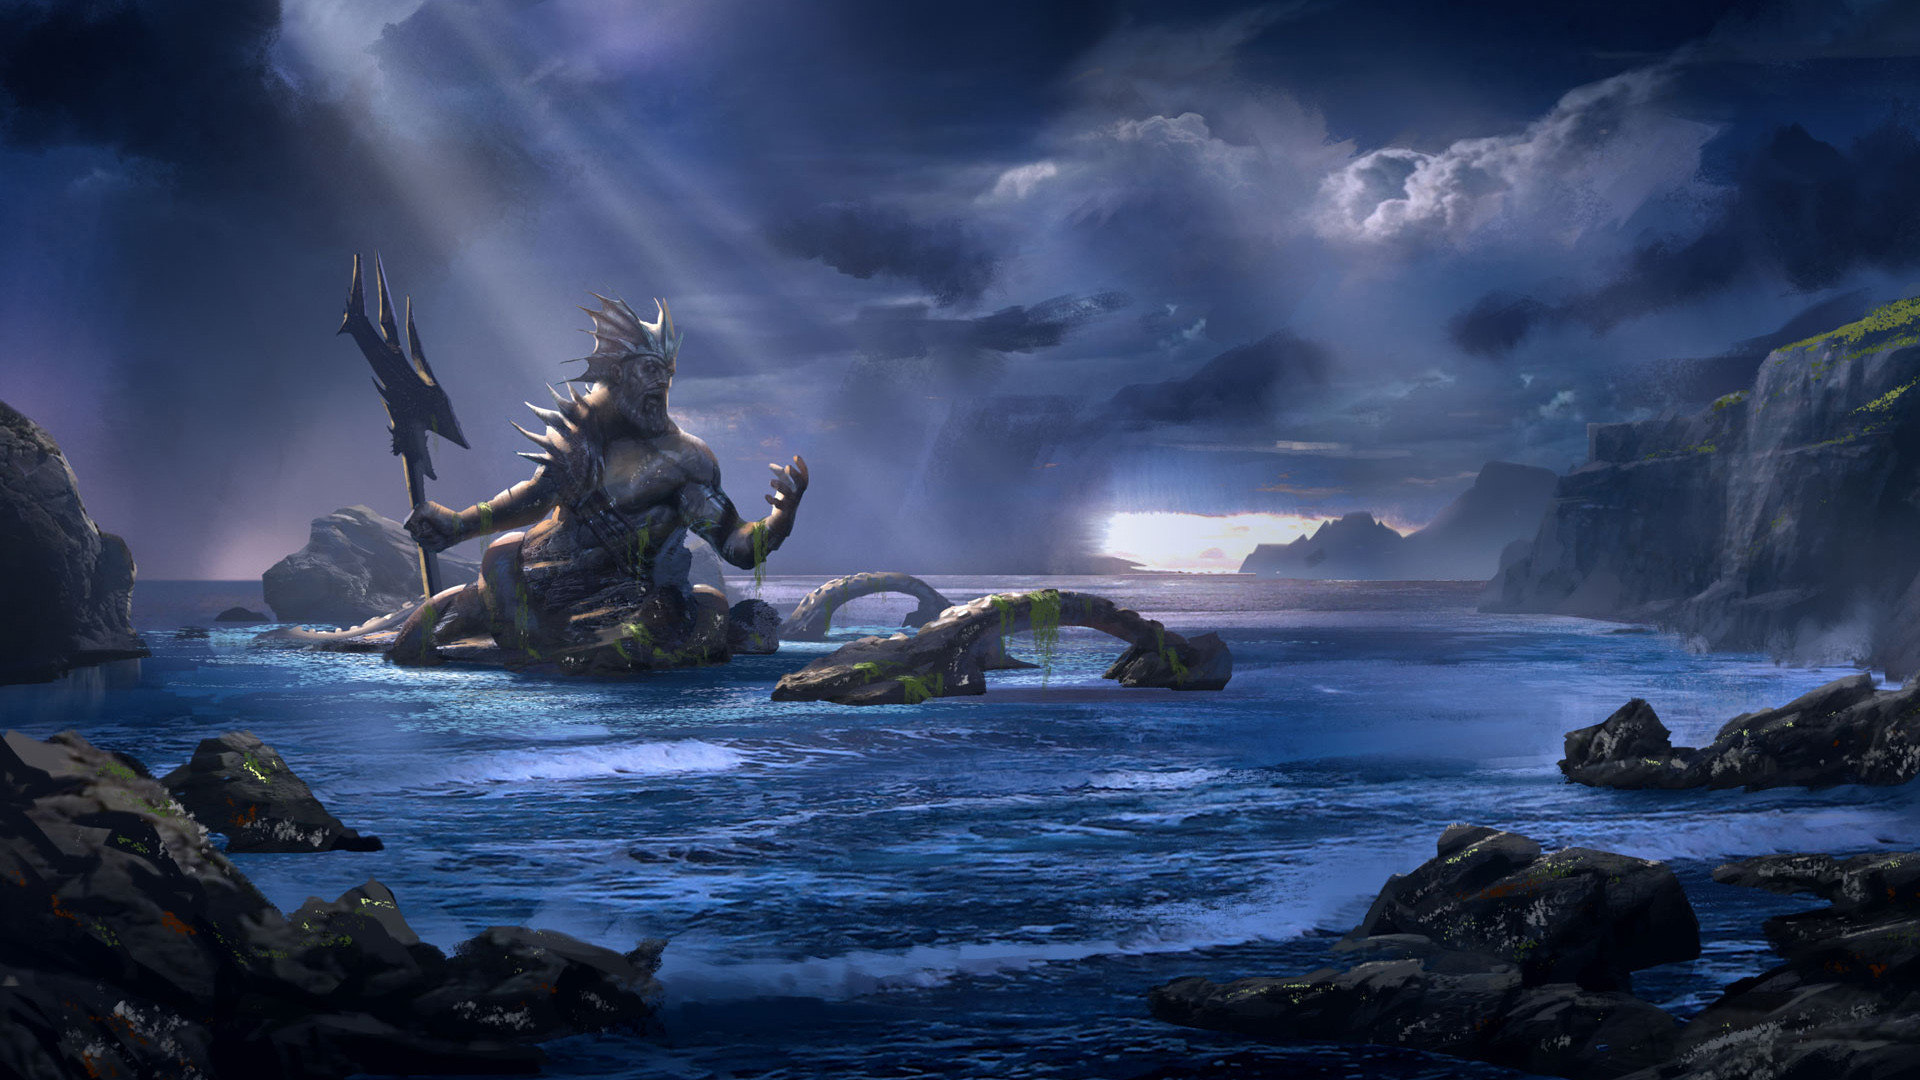 God of War Ascension Poseidon Wallpapers | HD Wallpapers